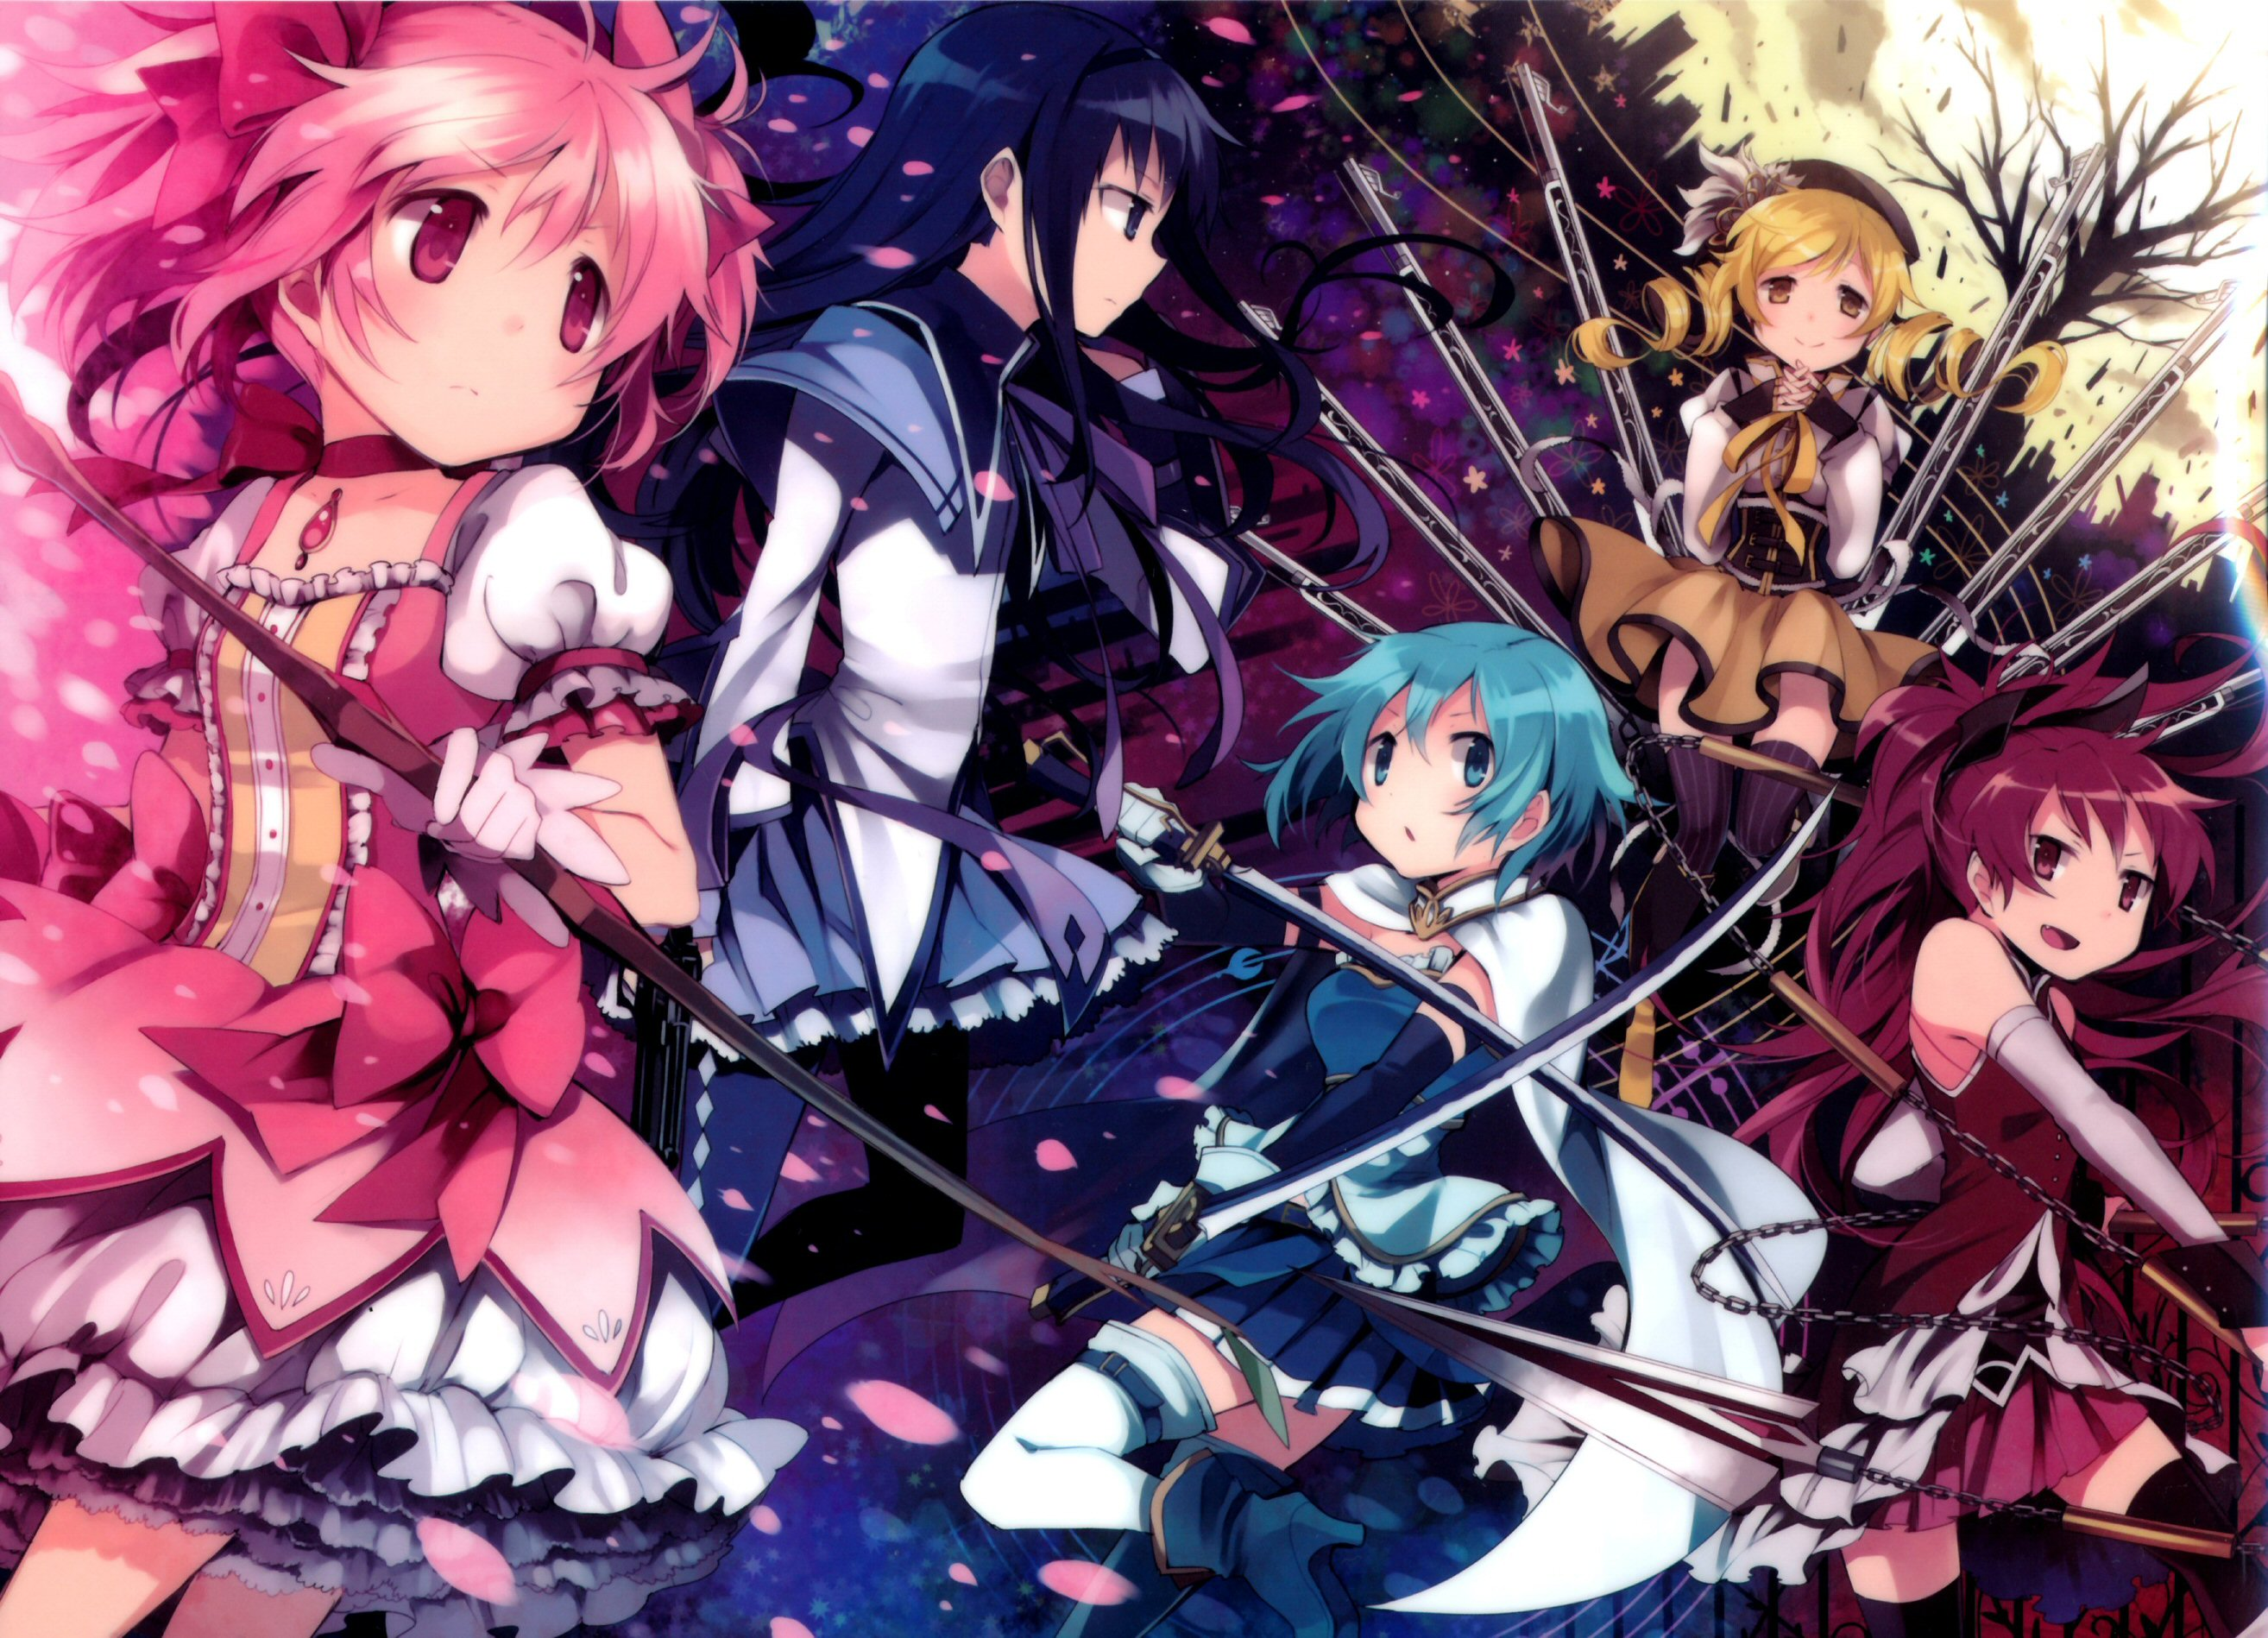 My Top Anime Reviews Puella Magi Madoka Magica On The